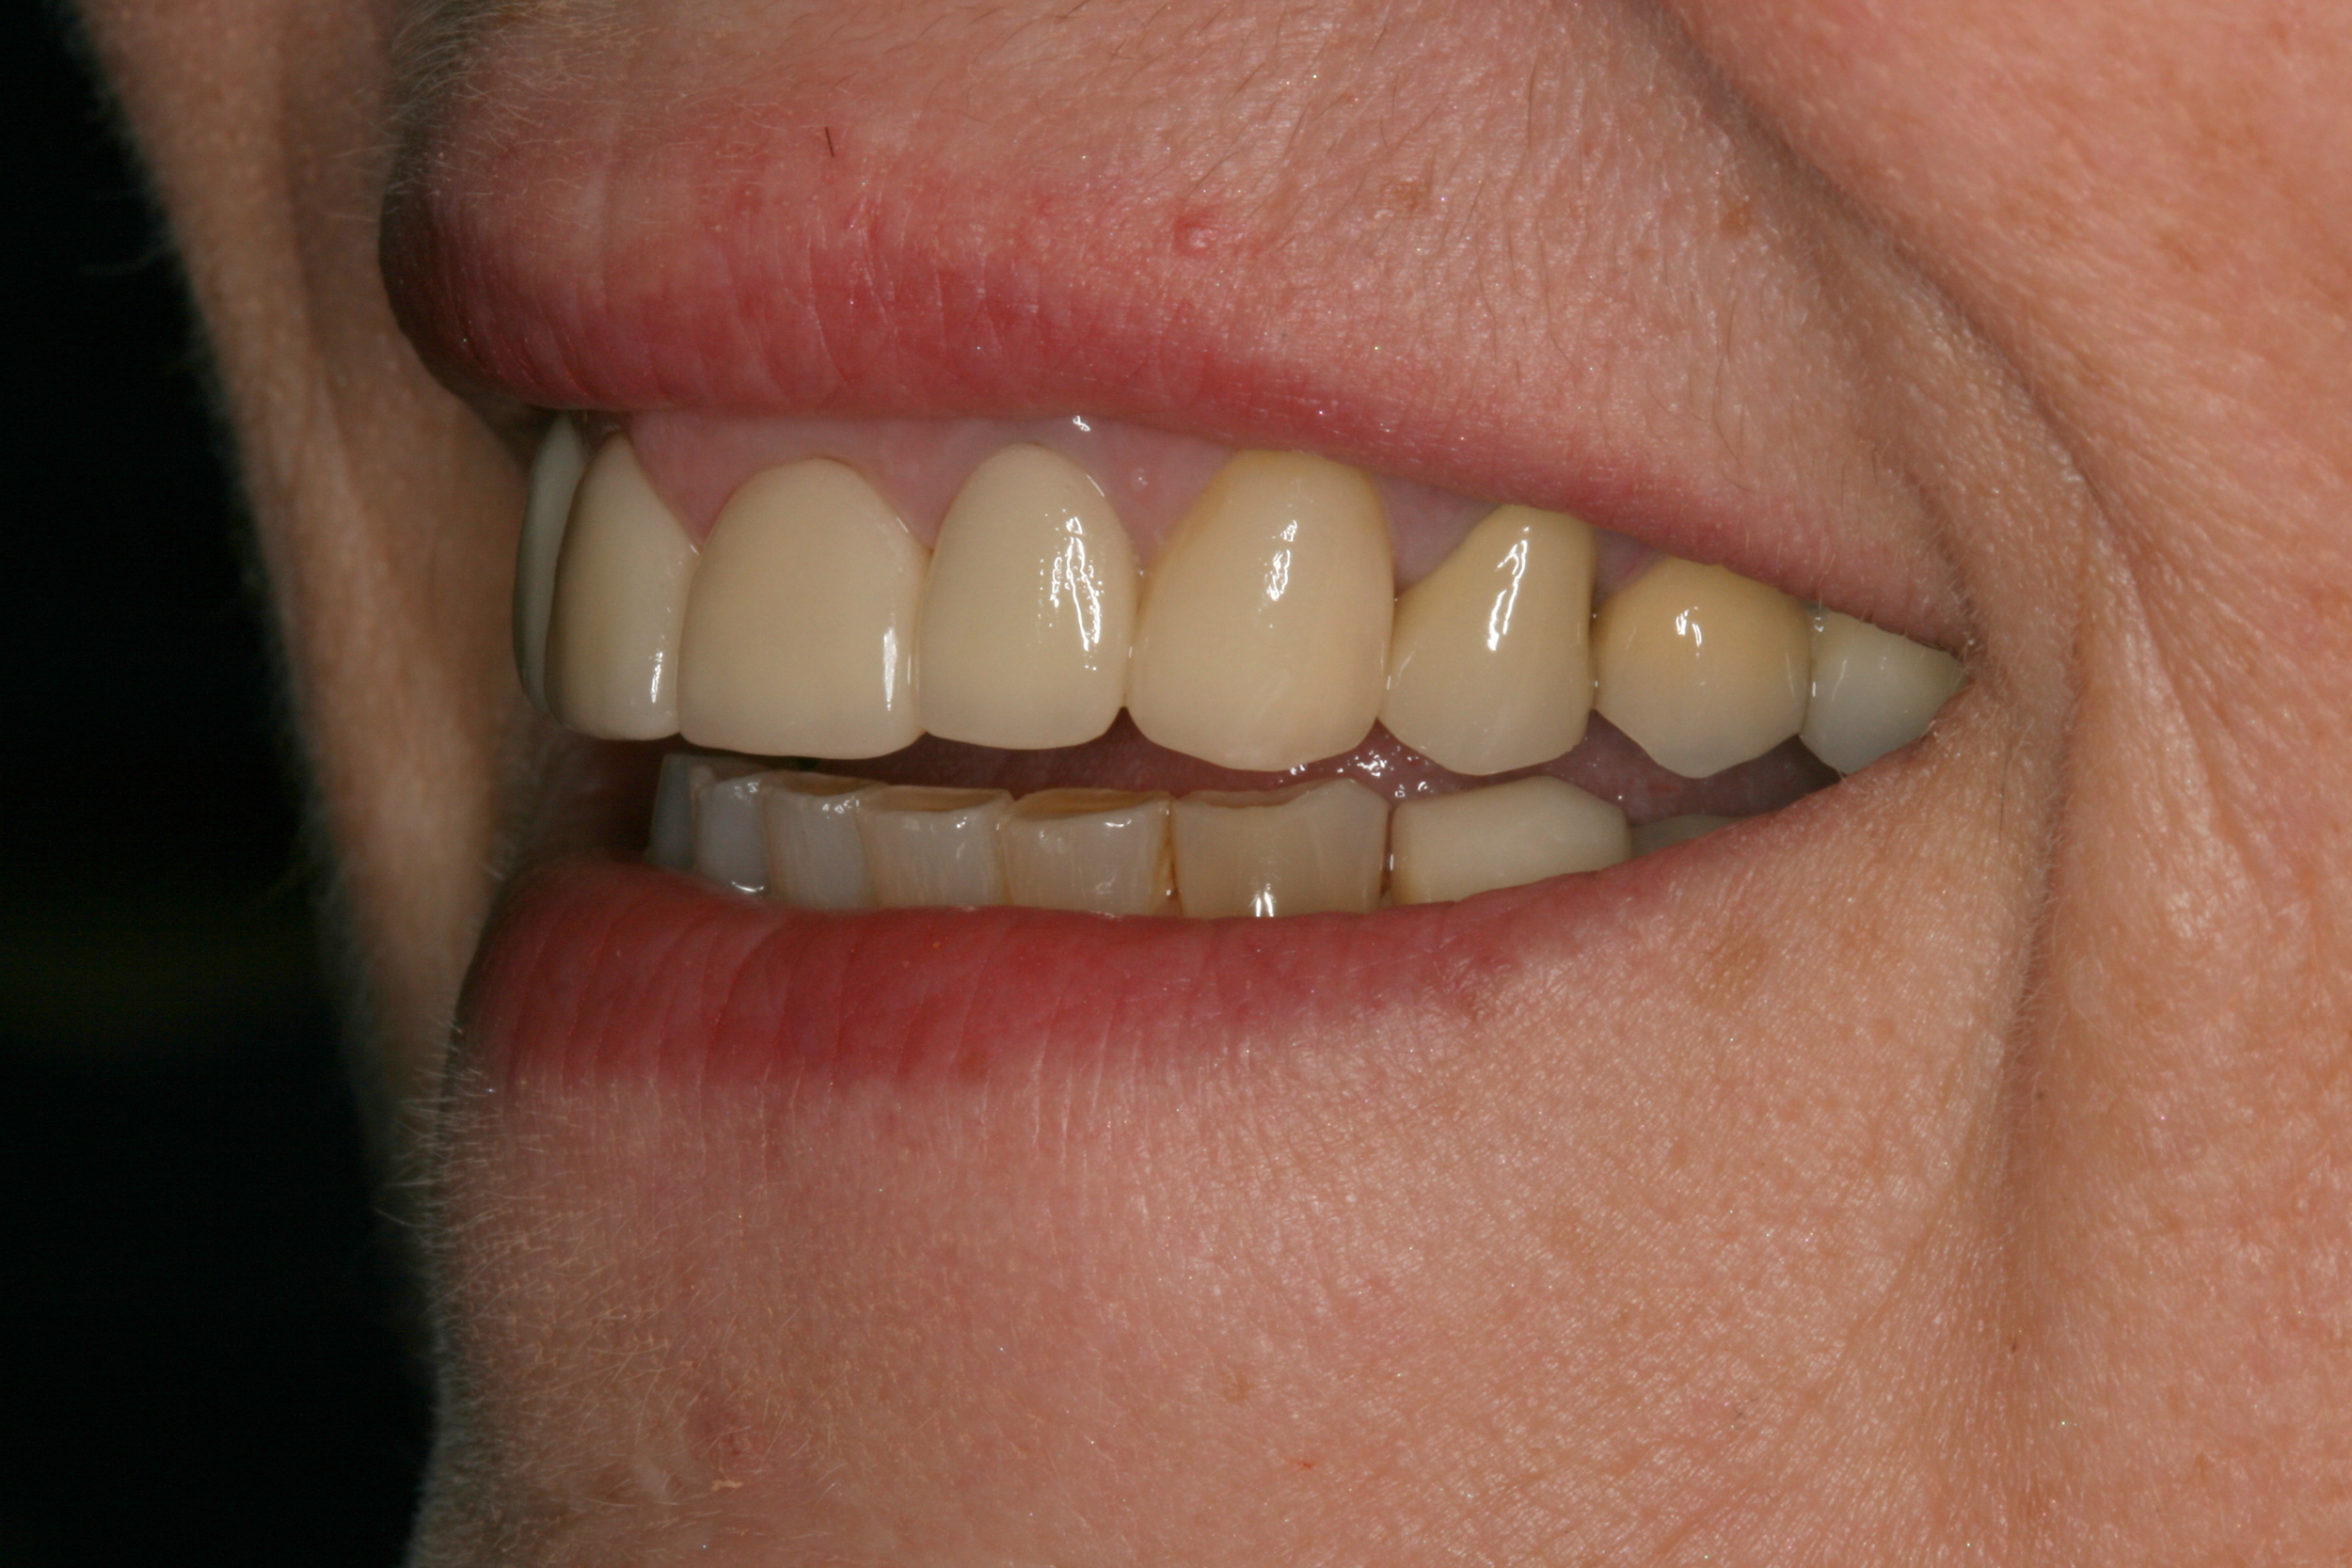 The_Tuddenham_Road_Dental_Surgery_Smile.JPG